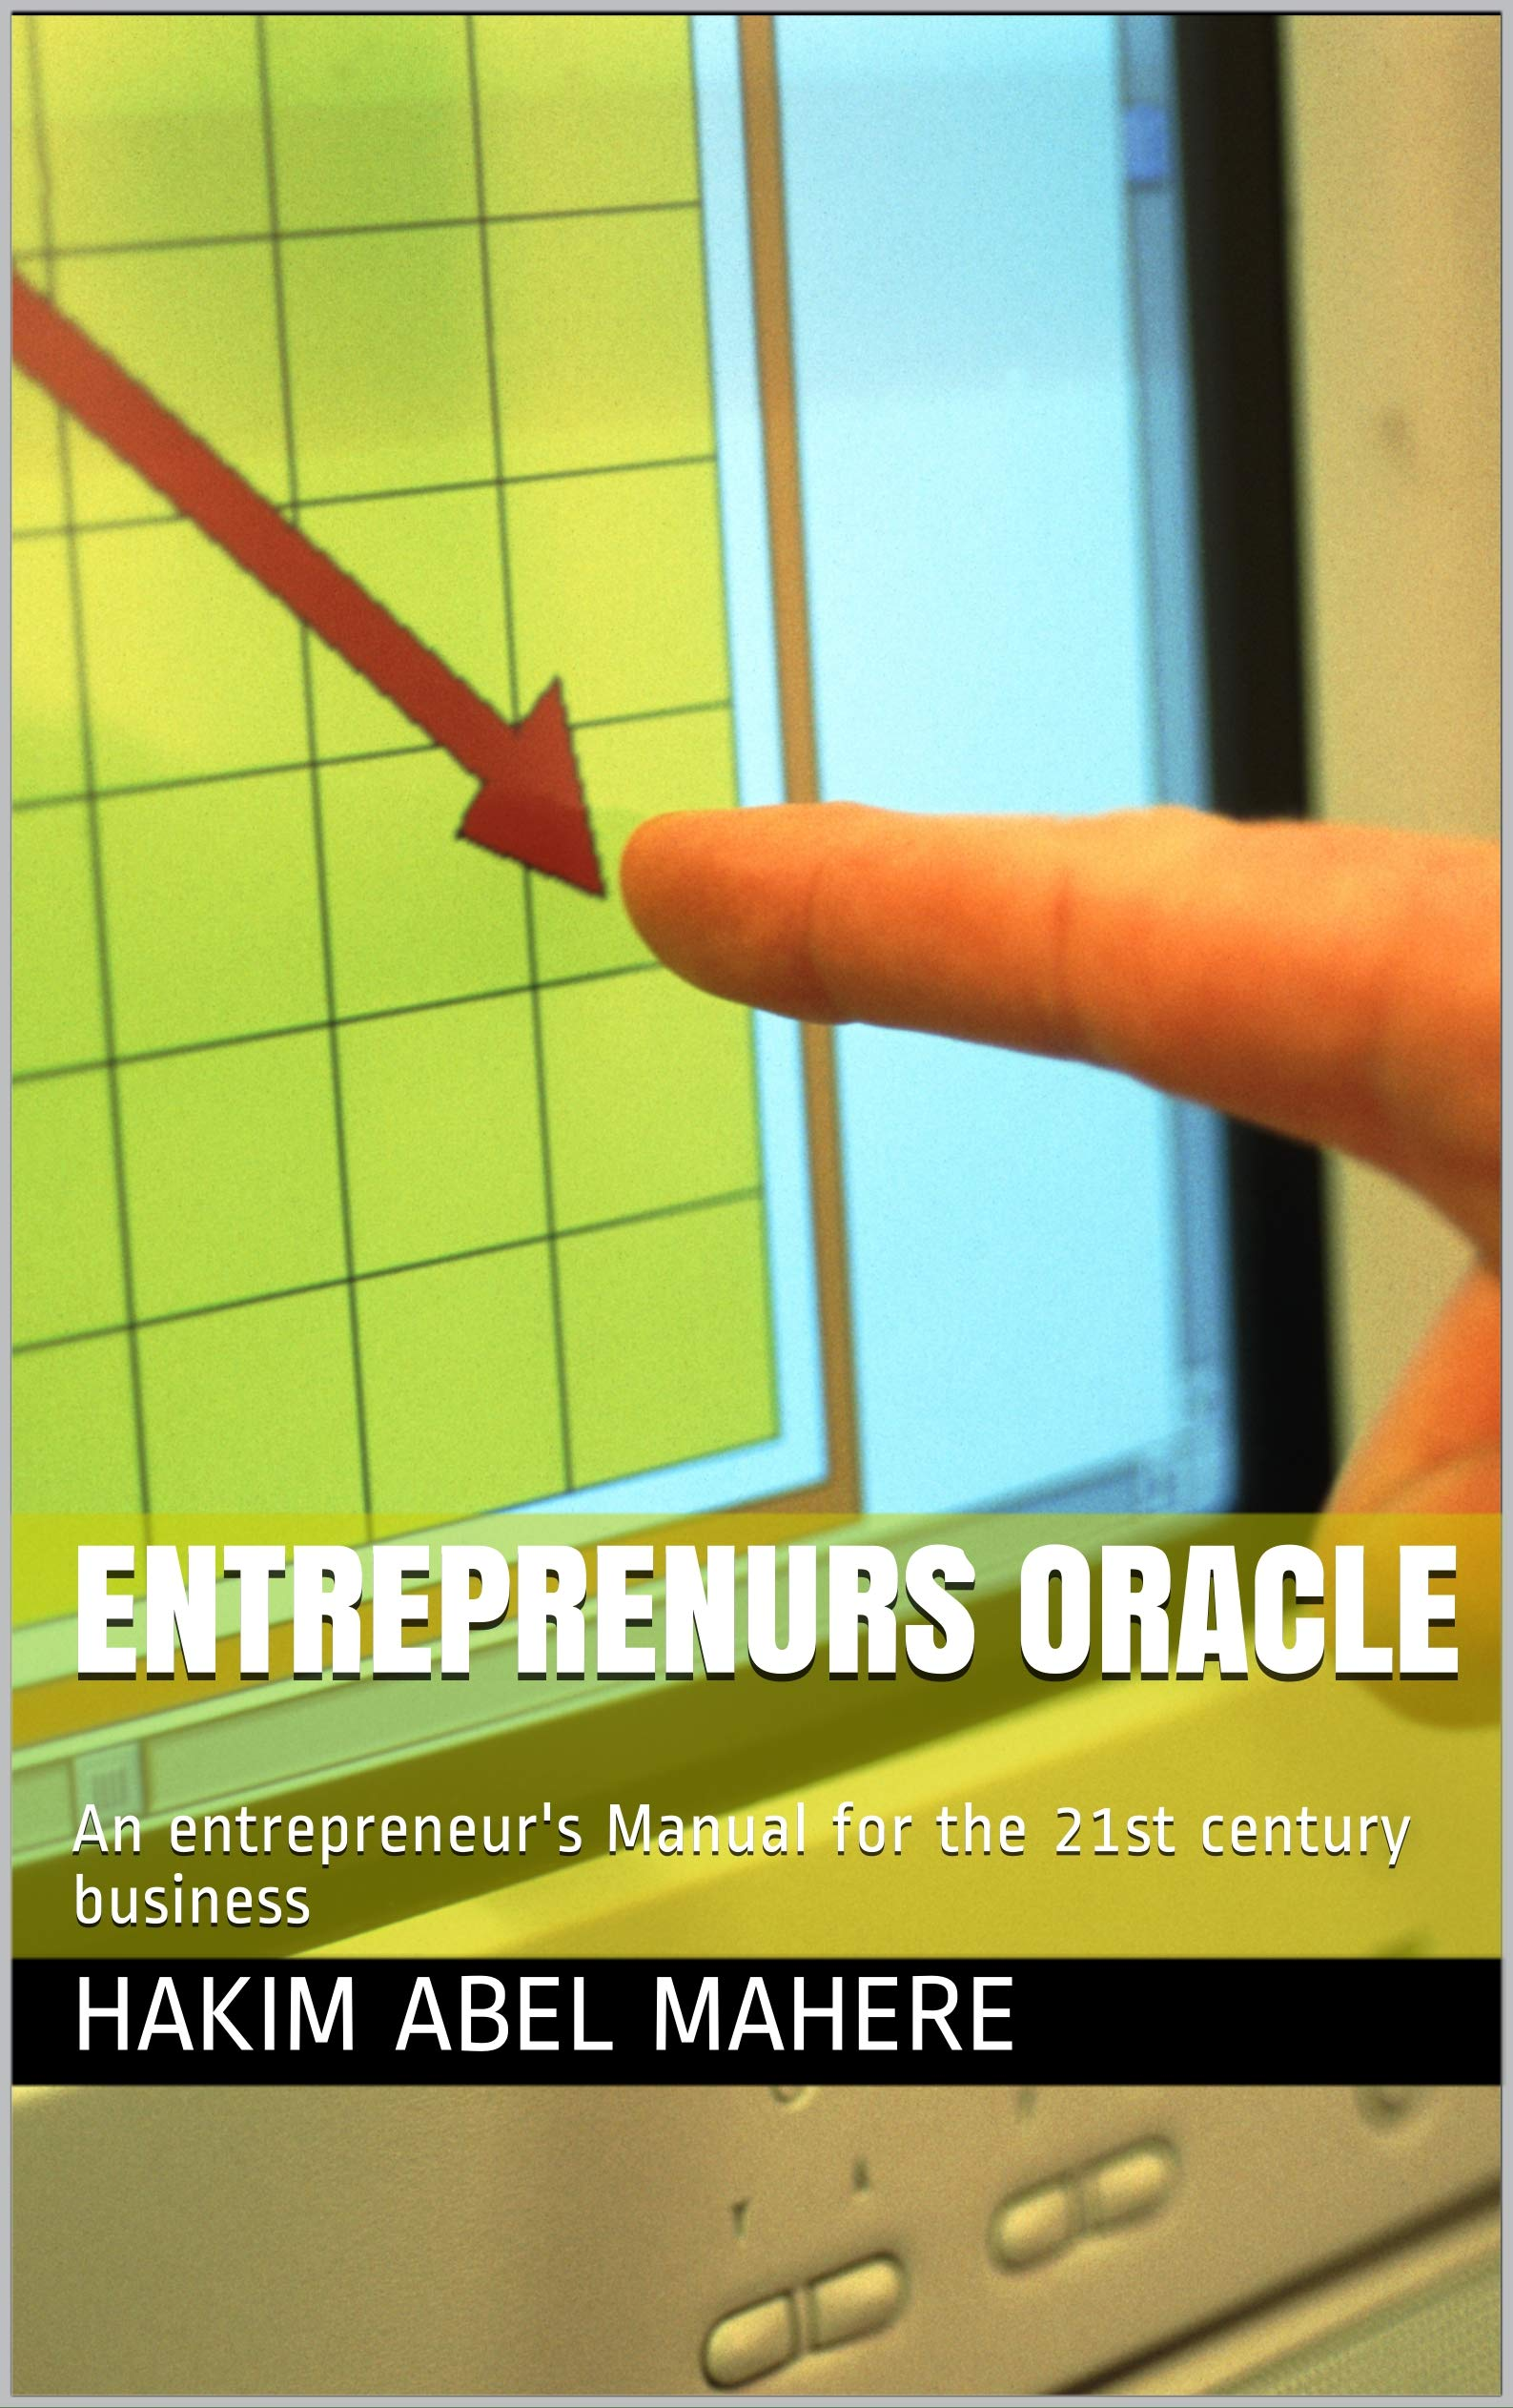 Entreprenurs Oracle: An entrepreneur's Manual for the 21st century business